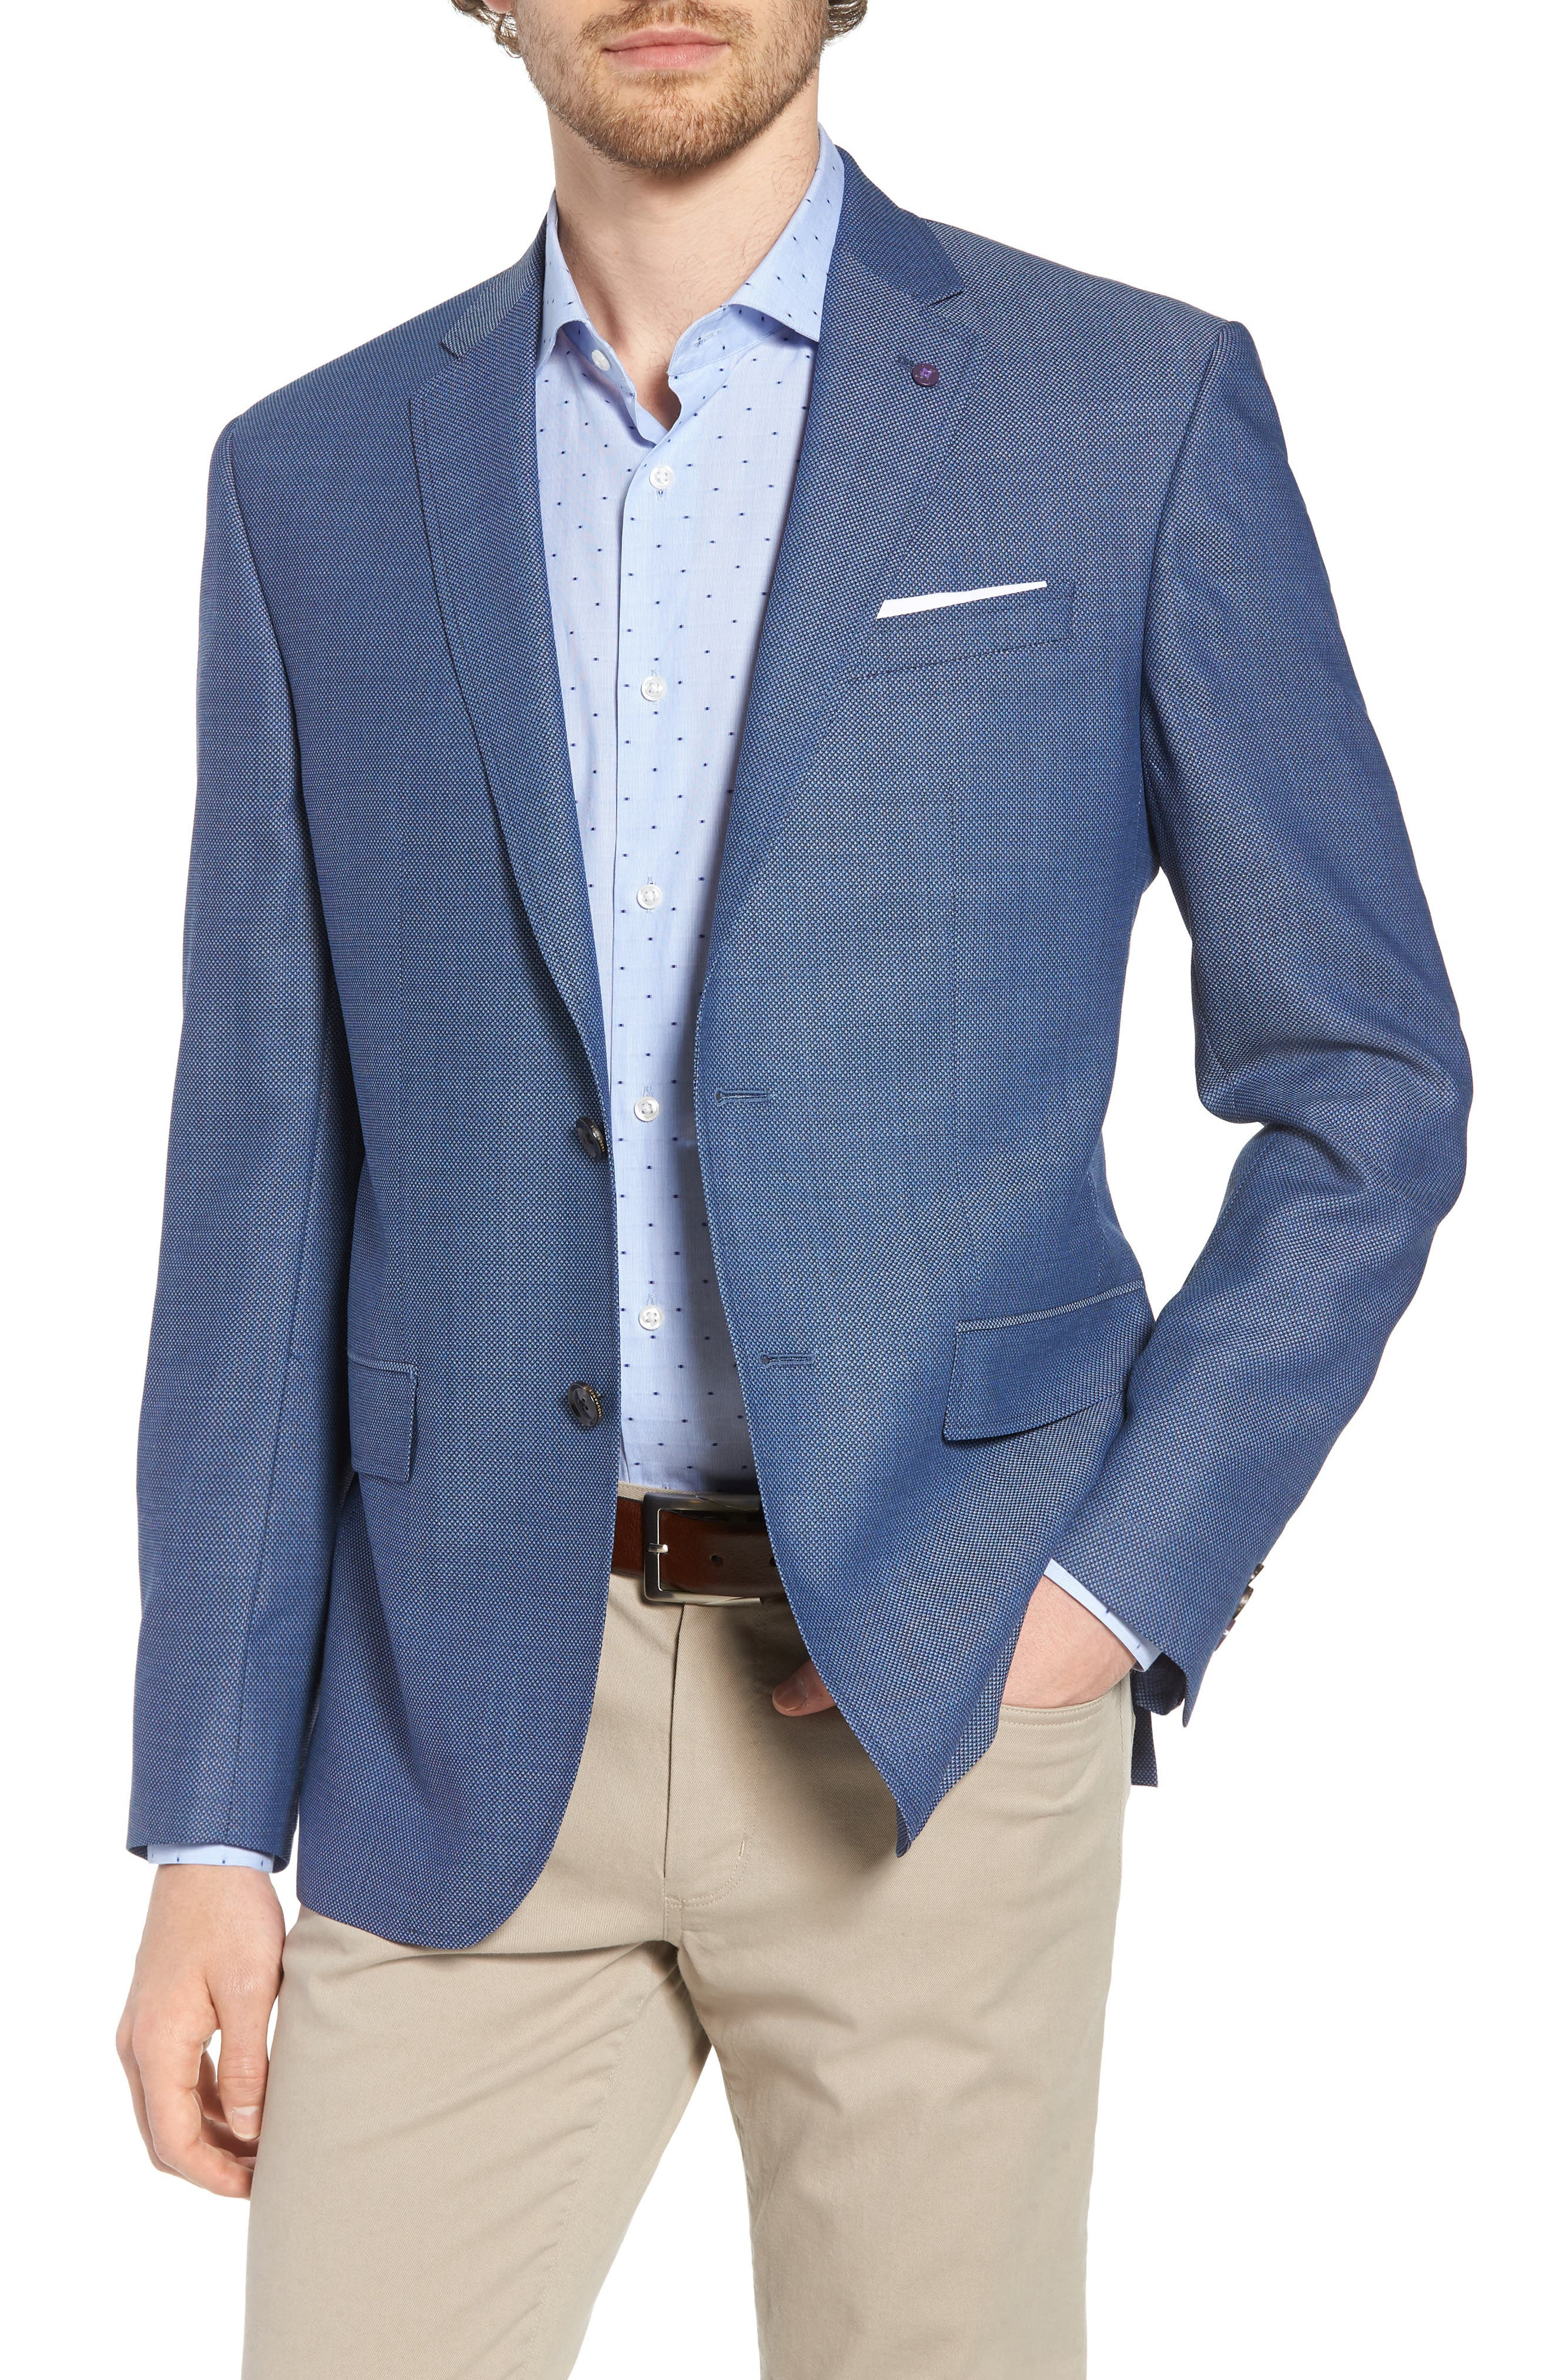 Jay Trim Fit Wool Blazer,                         Main,                         color, 400